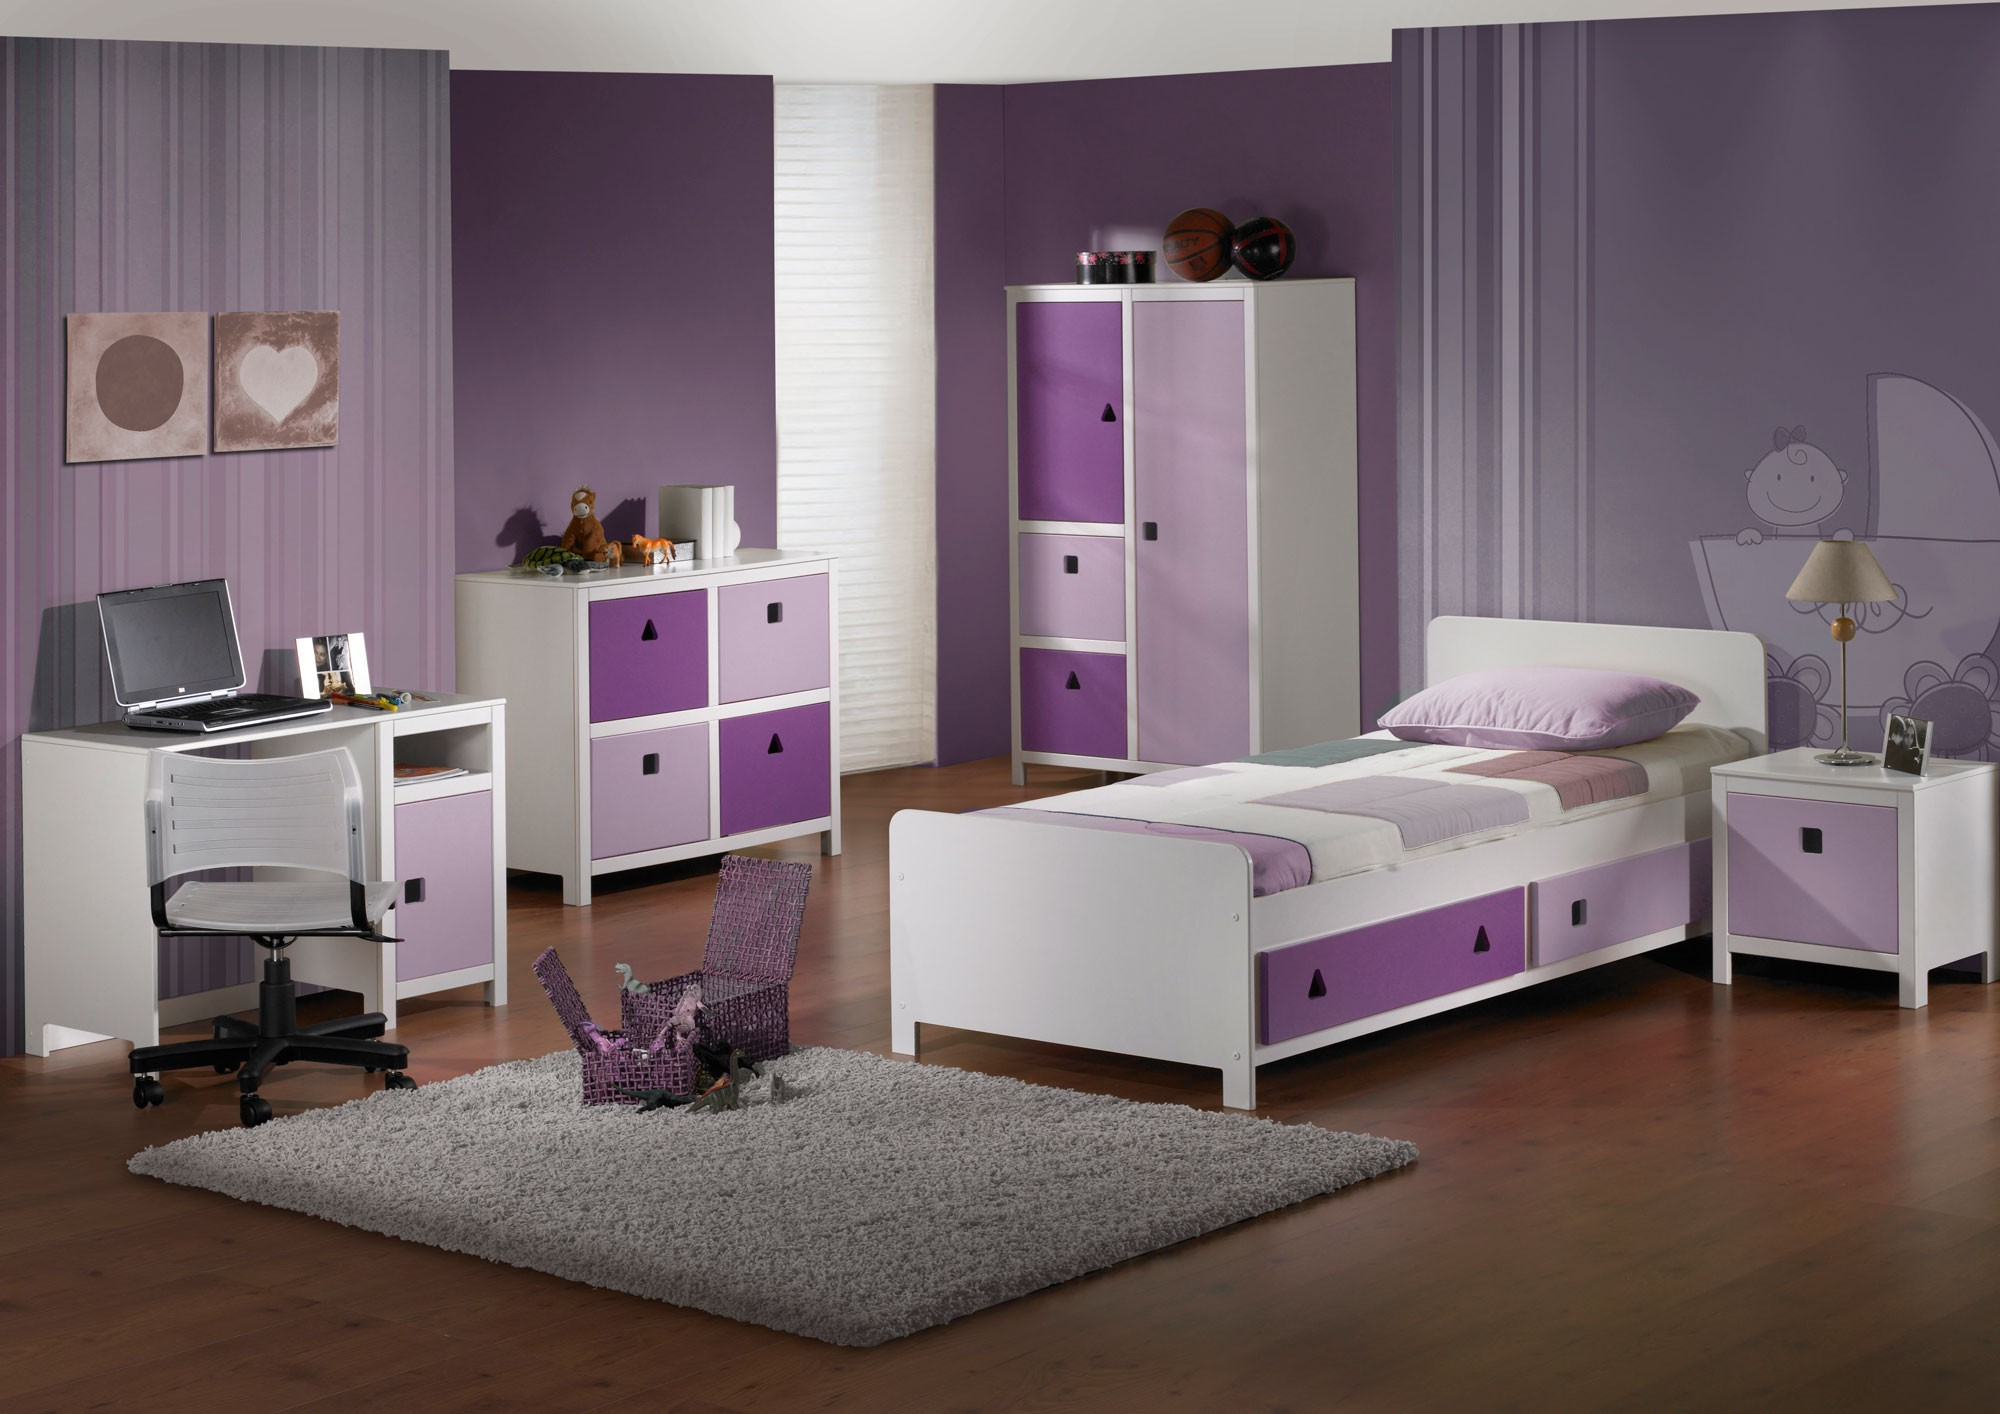 kinderzimmer lila h c m bel. Black Bedroom Furniture Sets. Home Design Ideas